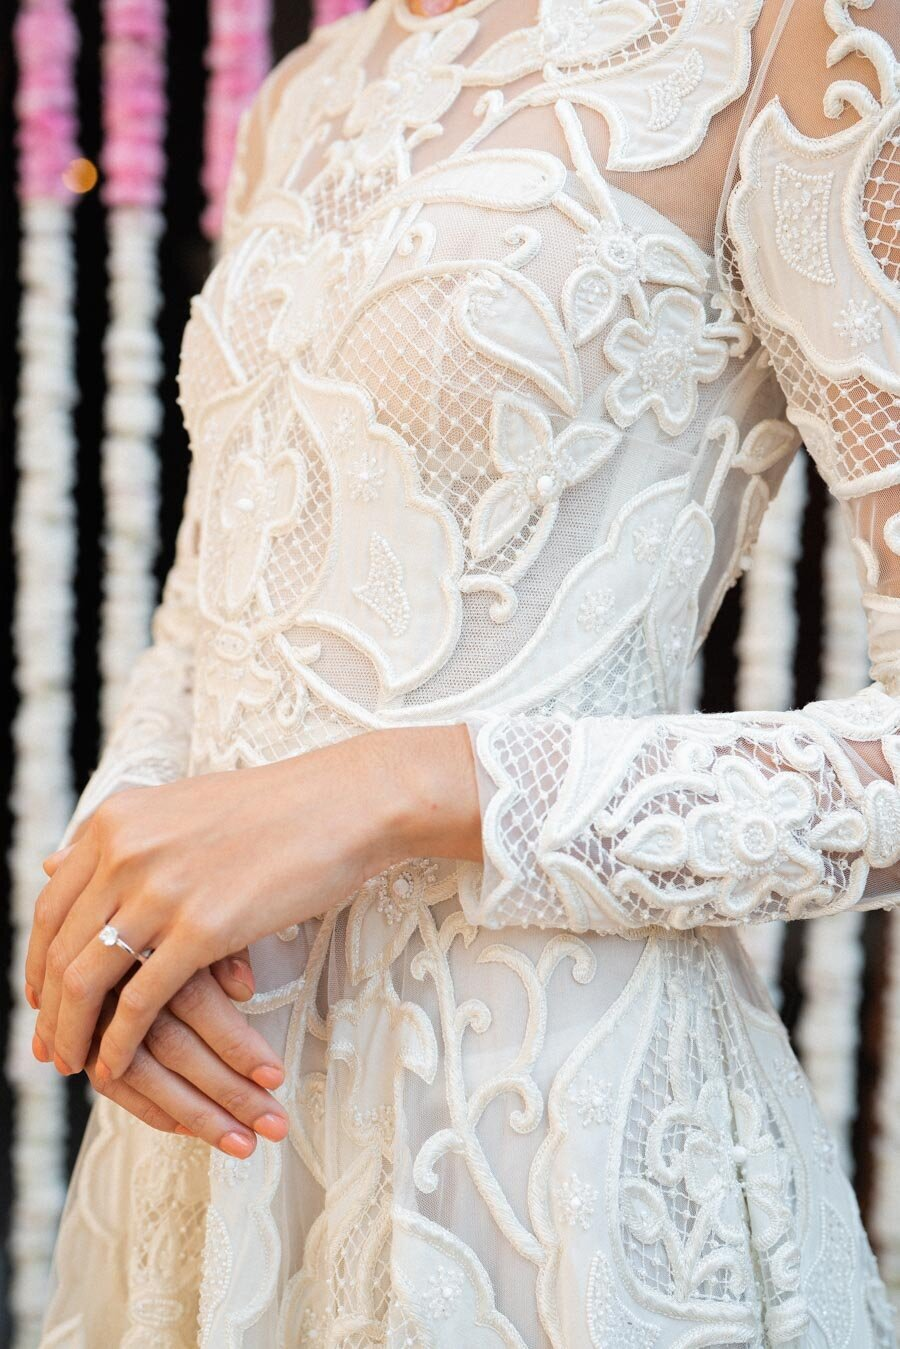 Naeem Khan Classic Wedding Dress Modern White Lace Bonnie Sen Photography